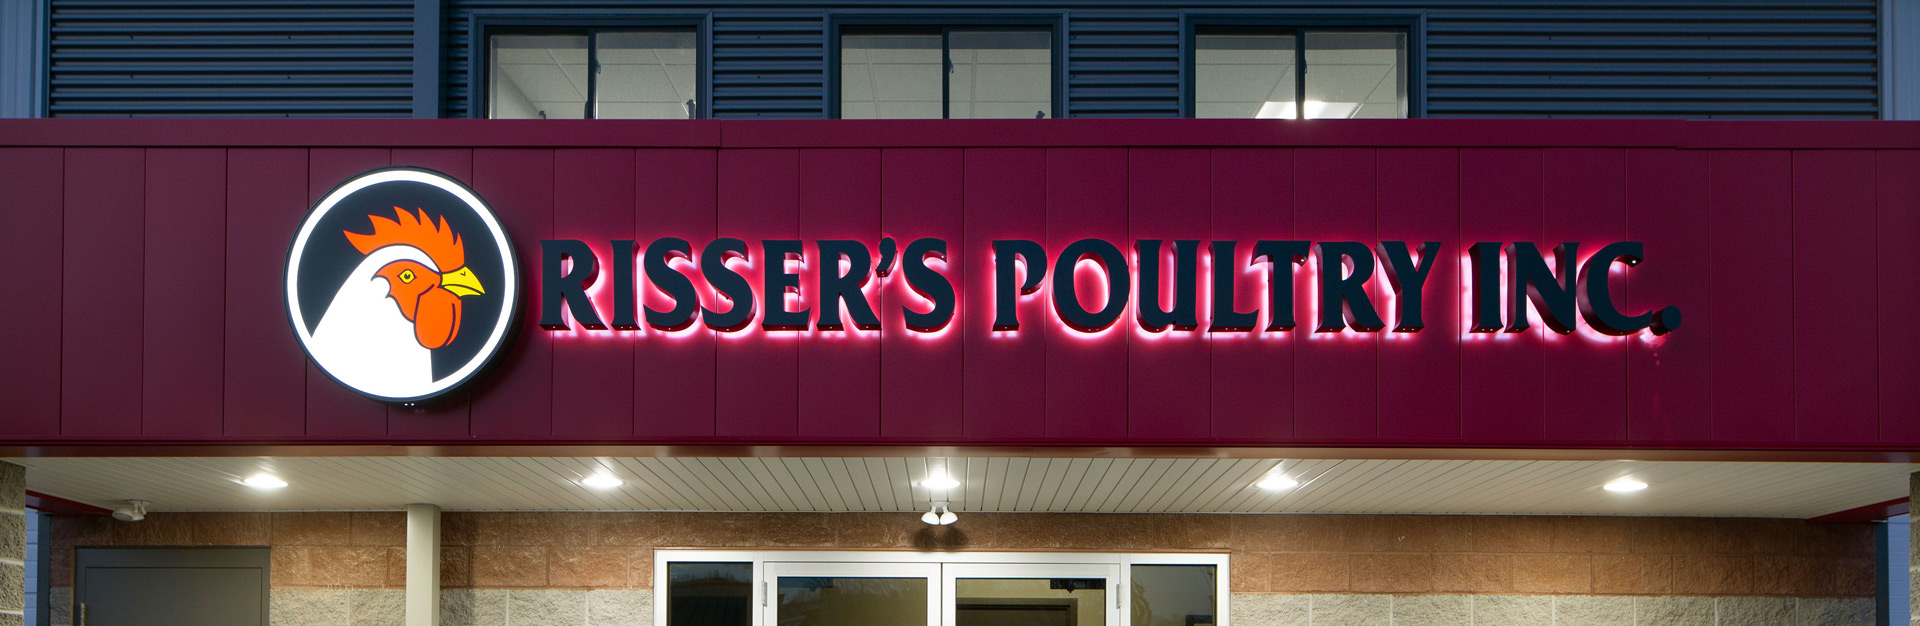 Exterior view of the Risser's Poultry Inc. sign